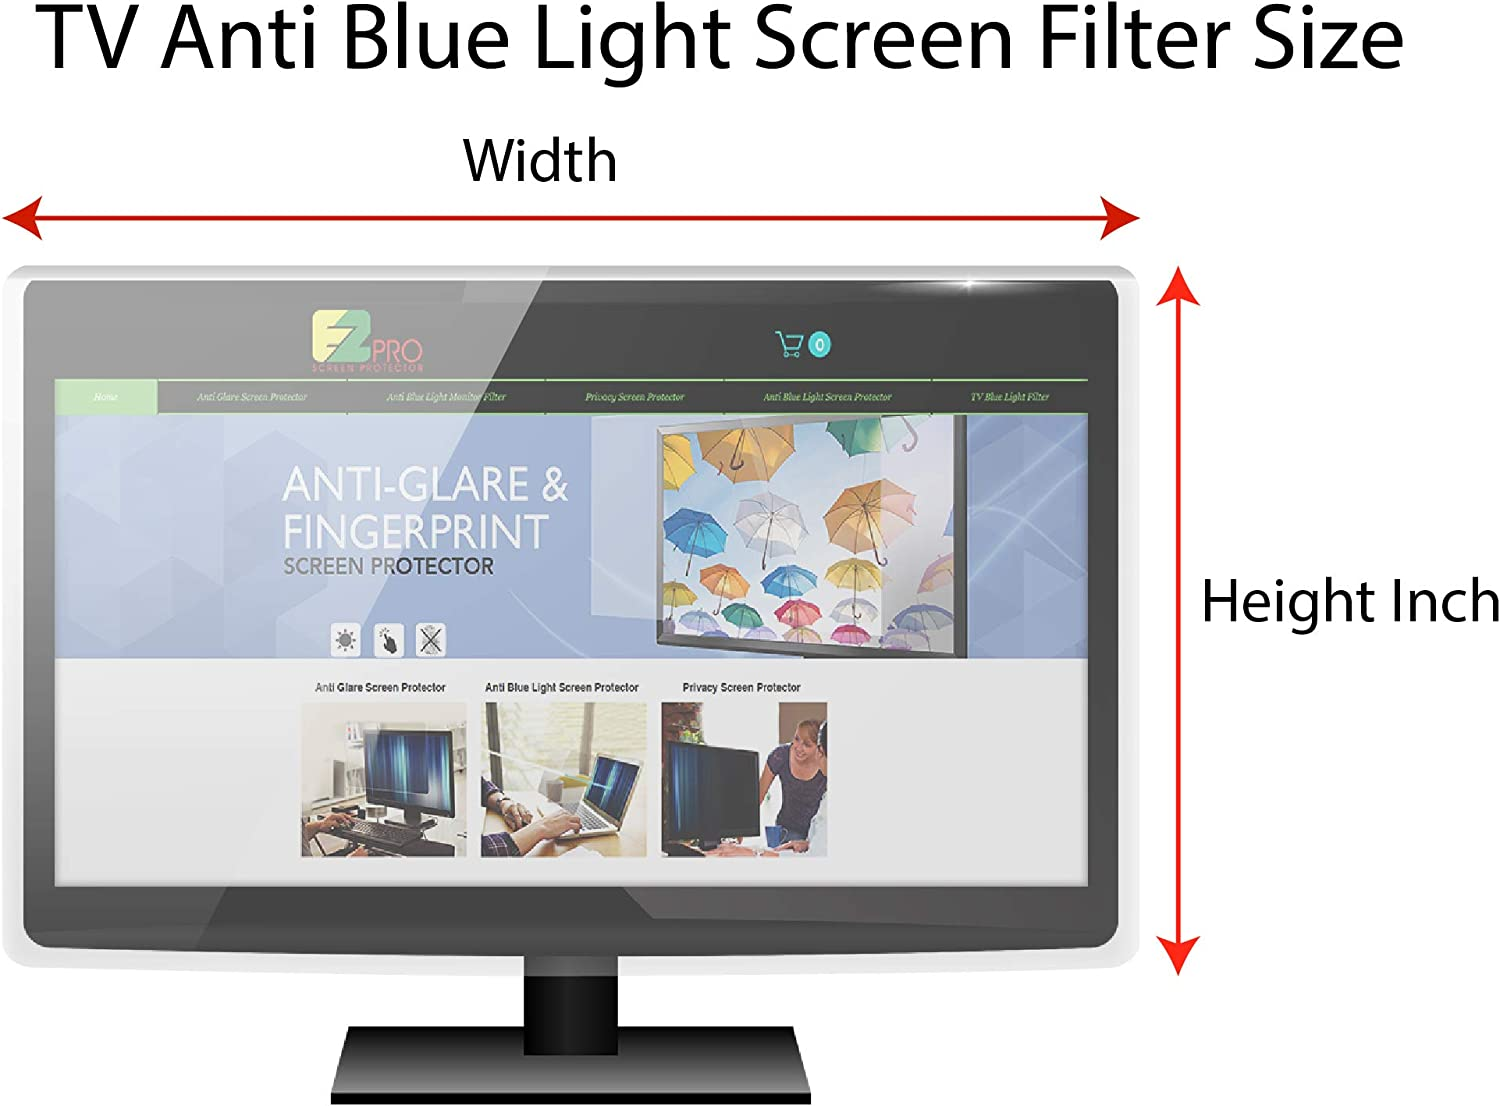 Filter Out Blue Light That Relieve Computer Eye Strain and Help You Sleep Better Anti Blue Light Screen Protector Panel for 48 Inches TV